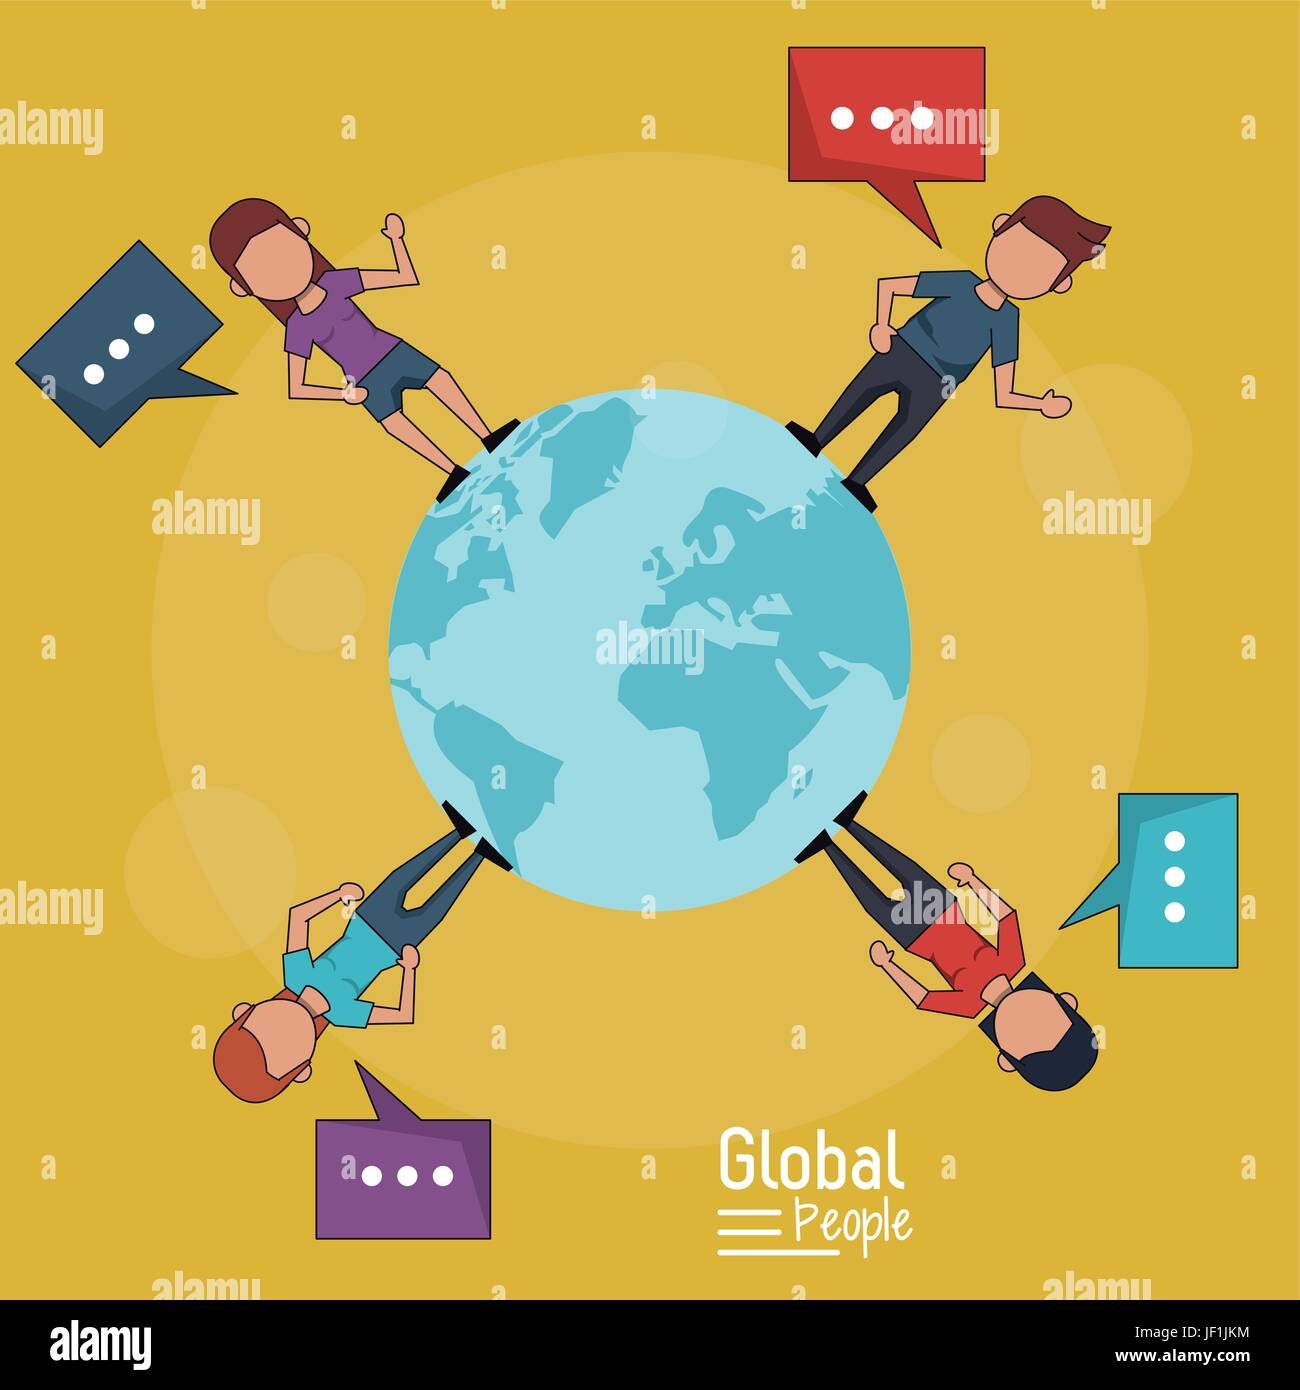 poster of global people with yellow background of planet earth and people around her with text dialogues - Stock Image